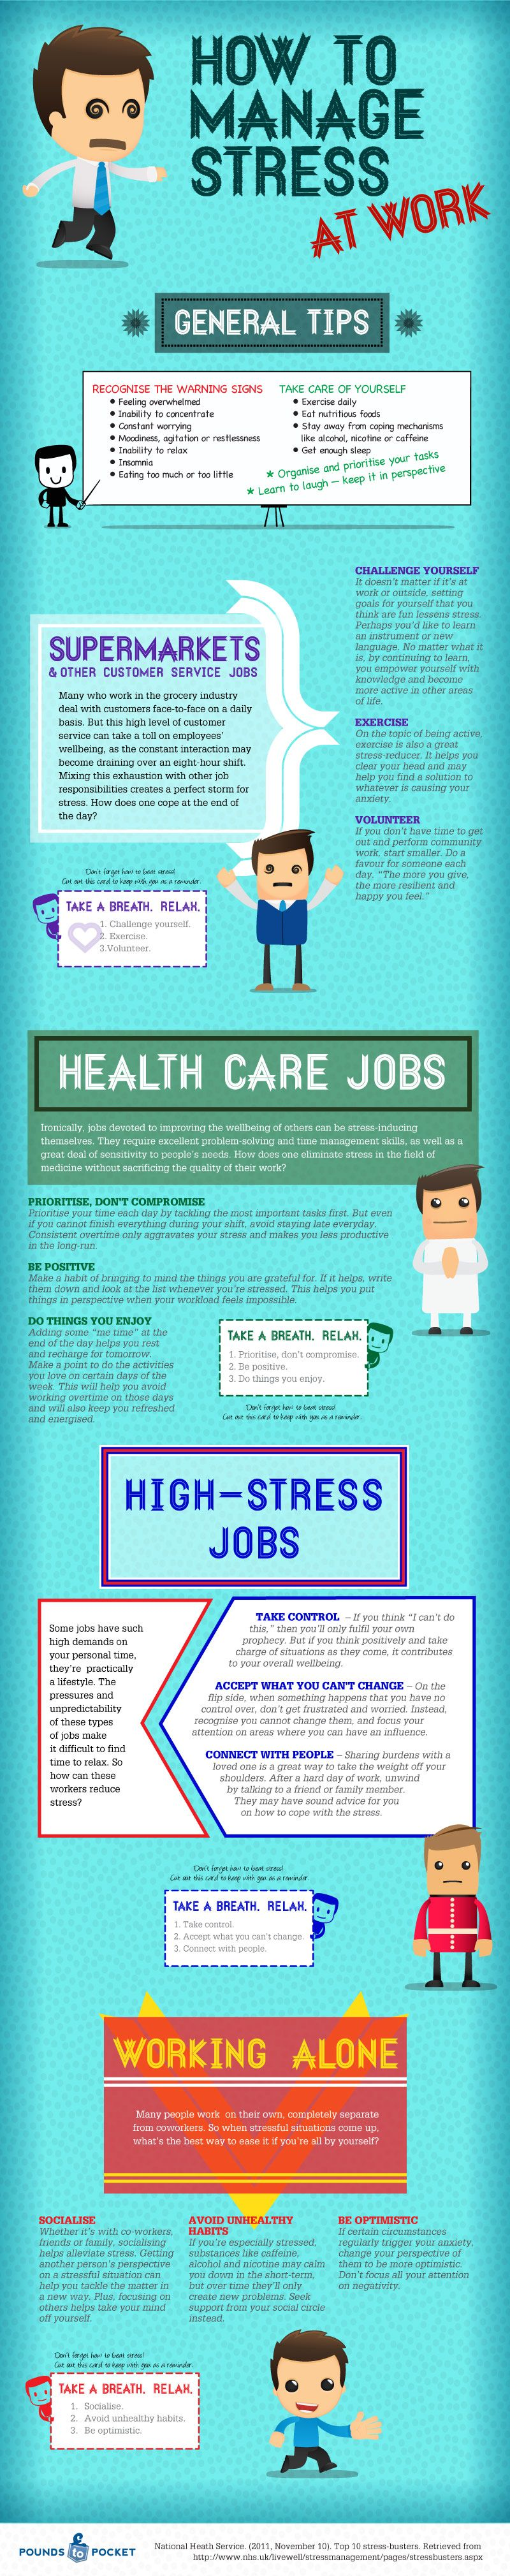 17 best images about stress management health mom 17 best images about stress management health mom and tips